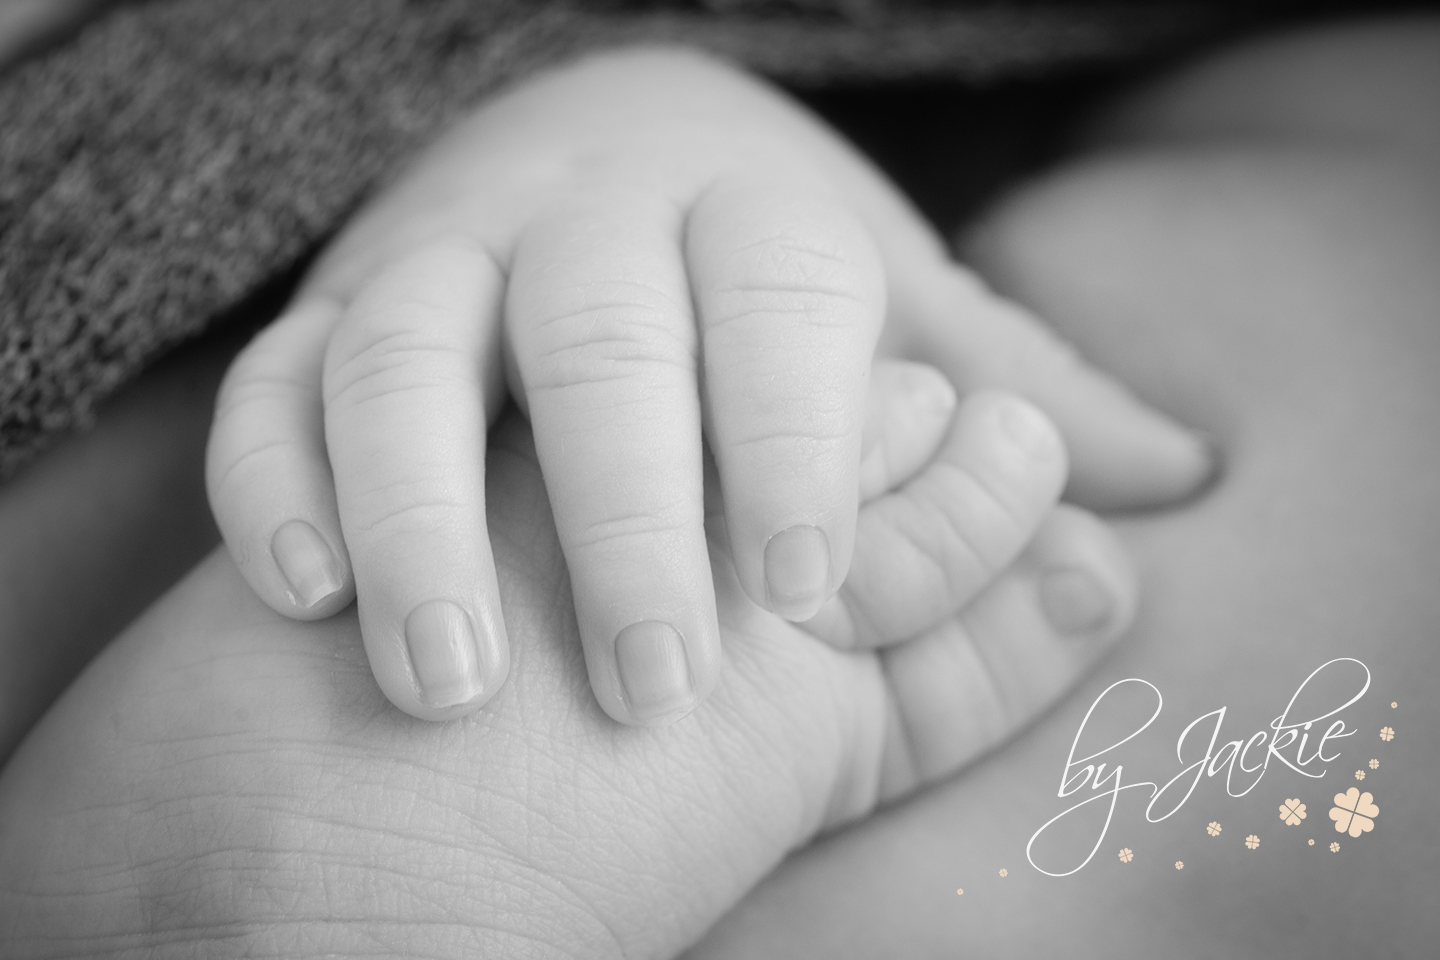 Close up image of baby's hand holding his own foot by Babies By Jackie in Market Weighton, near Beverley, Hessle and Hull, East Ridings of Yorkshire, UK